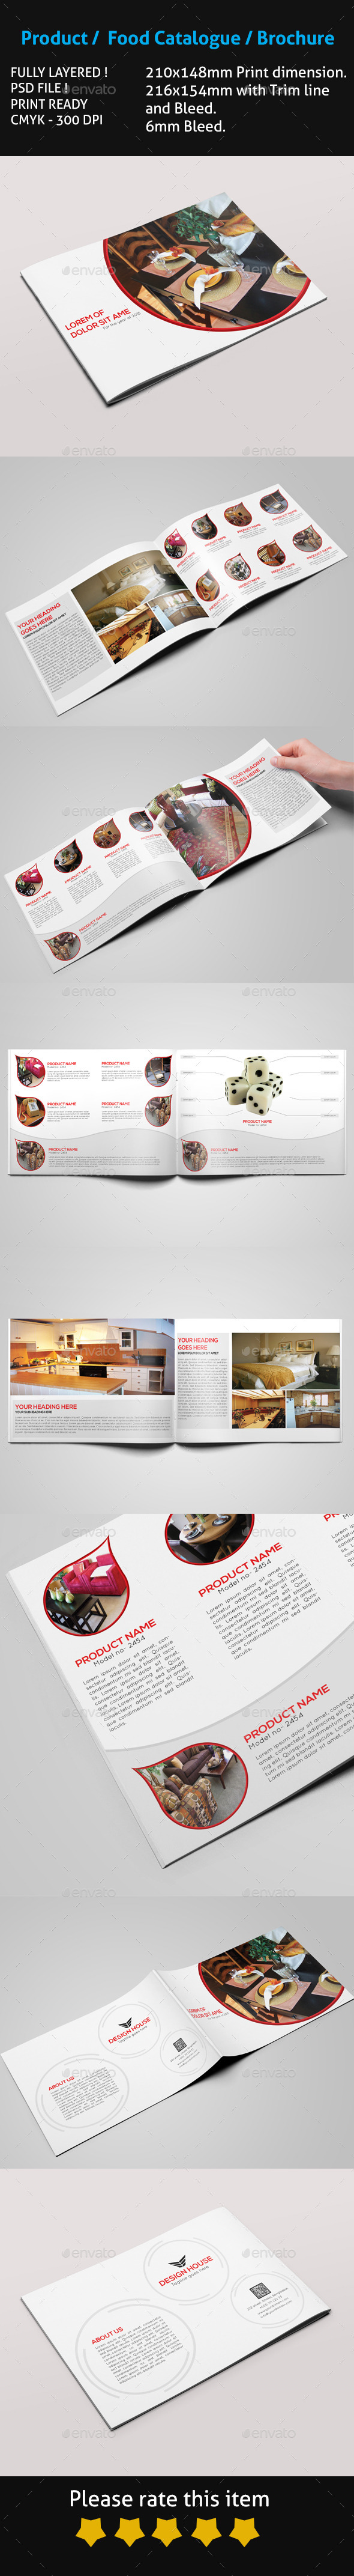 Product Food Catalogue Brochure